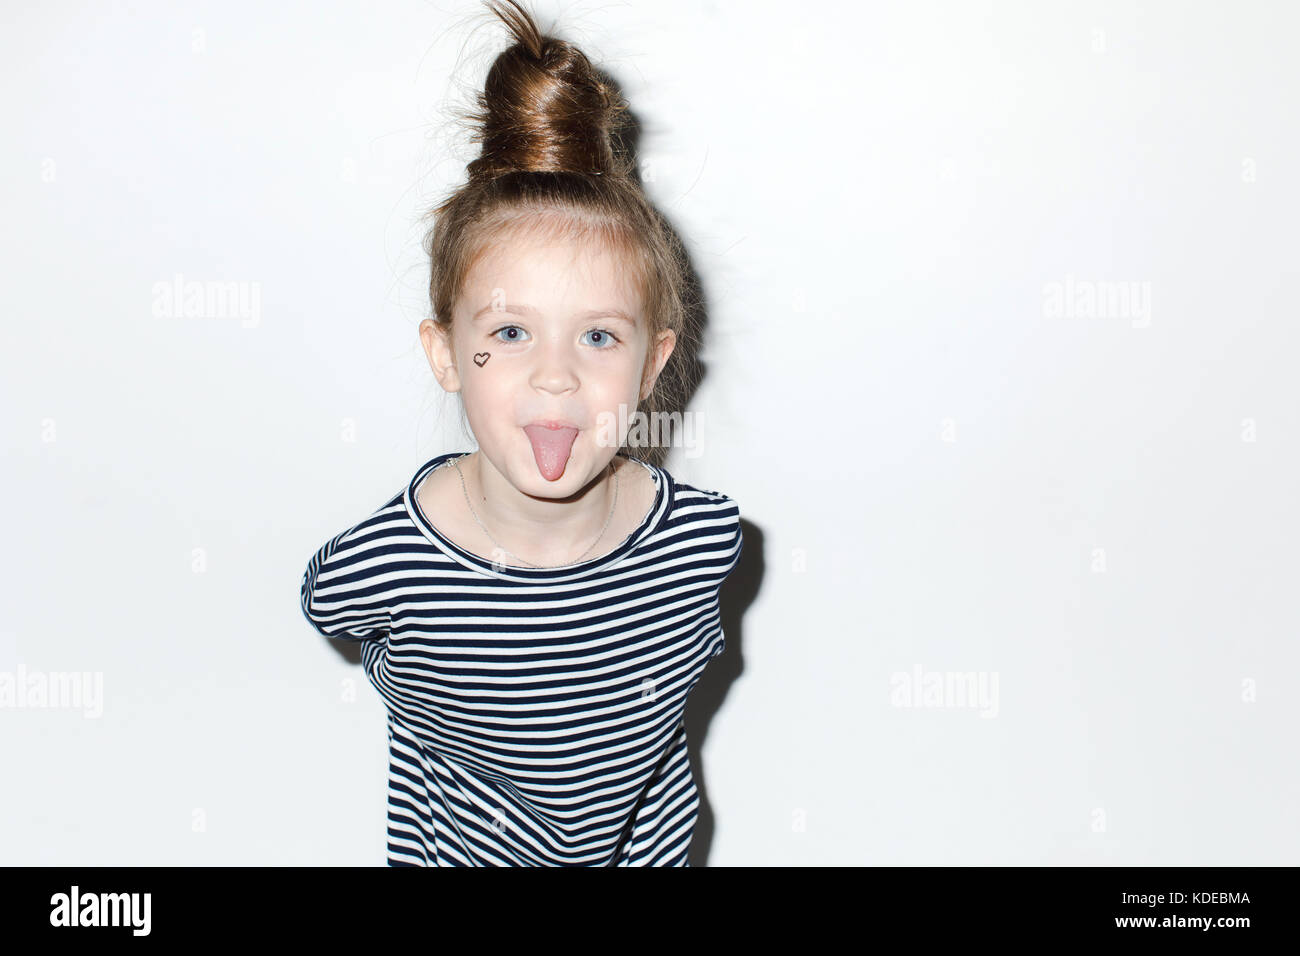 Cute girl showing tongue on a white background - Stock Image